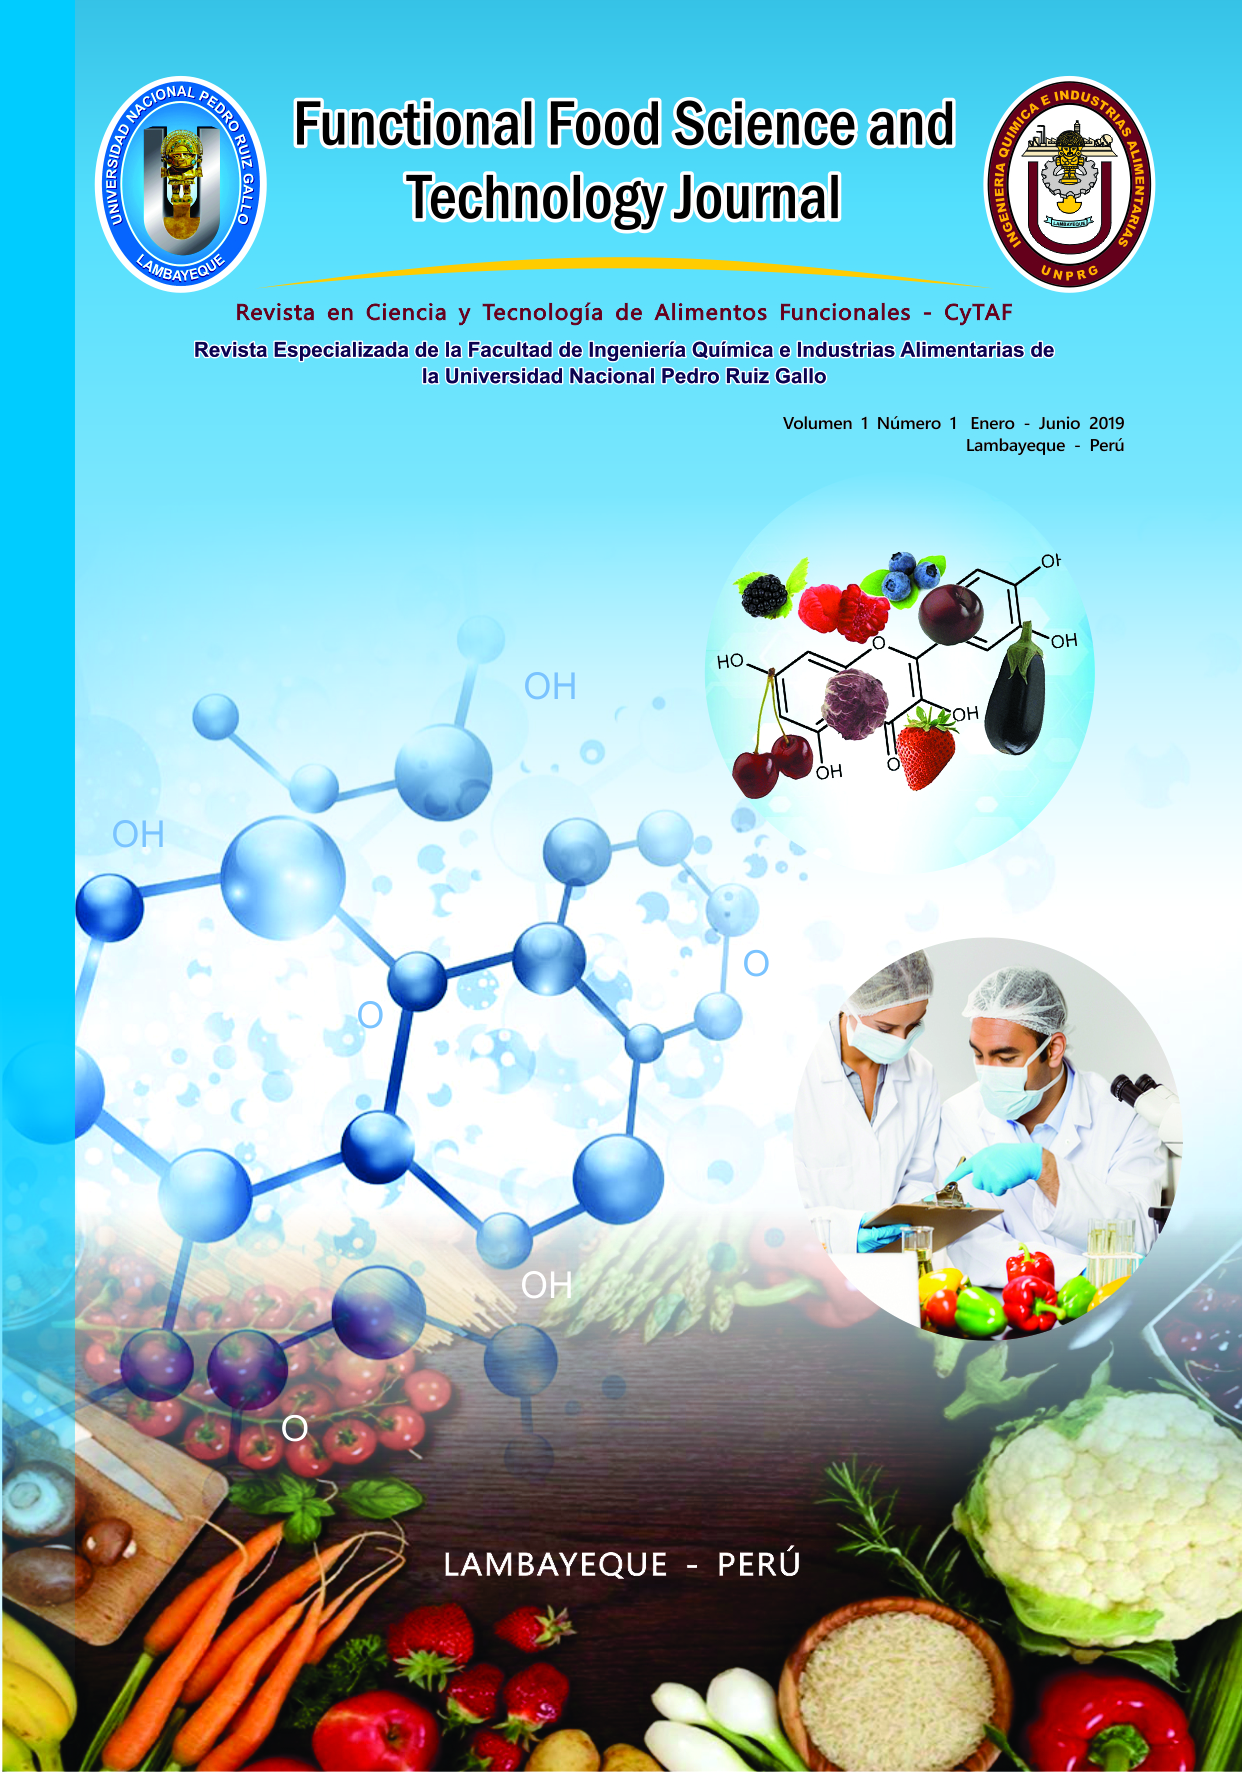 FUNCTIONAL FOOD SCIENCE AND TECHNOLOGY JOURNAL